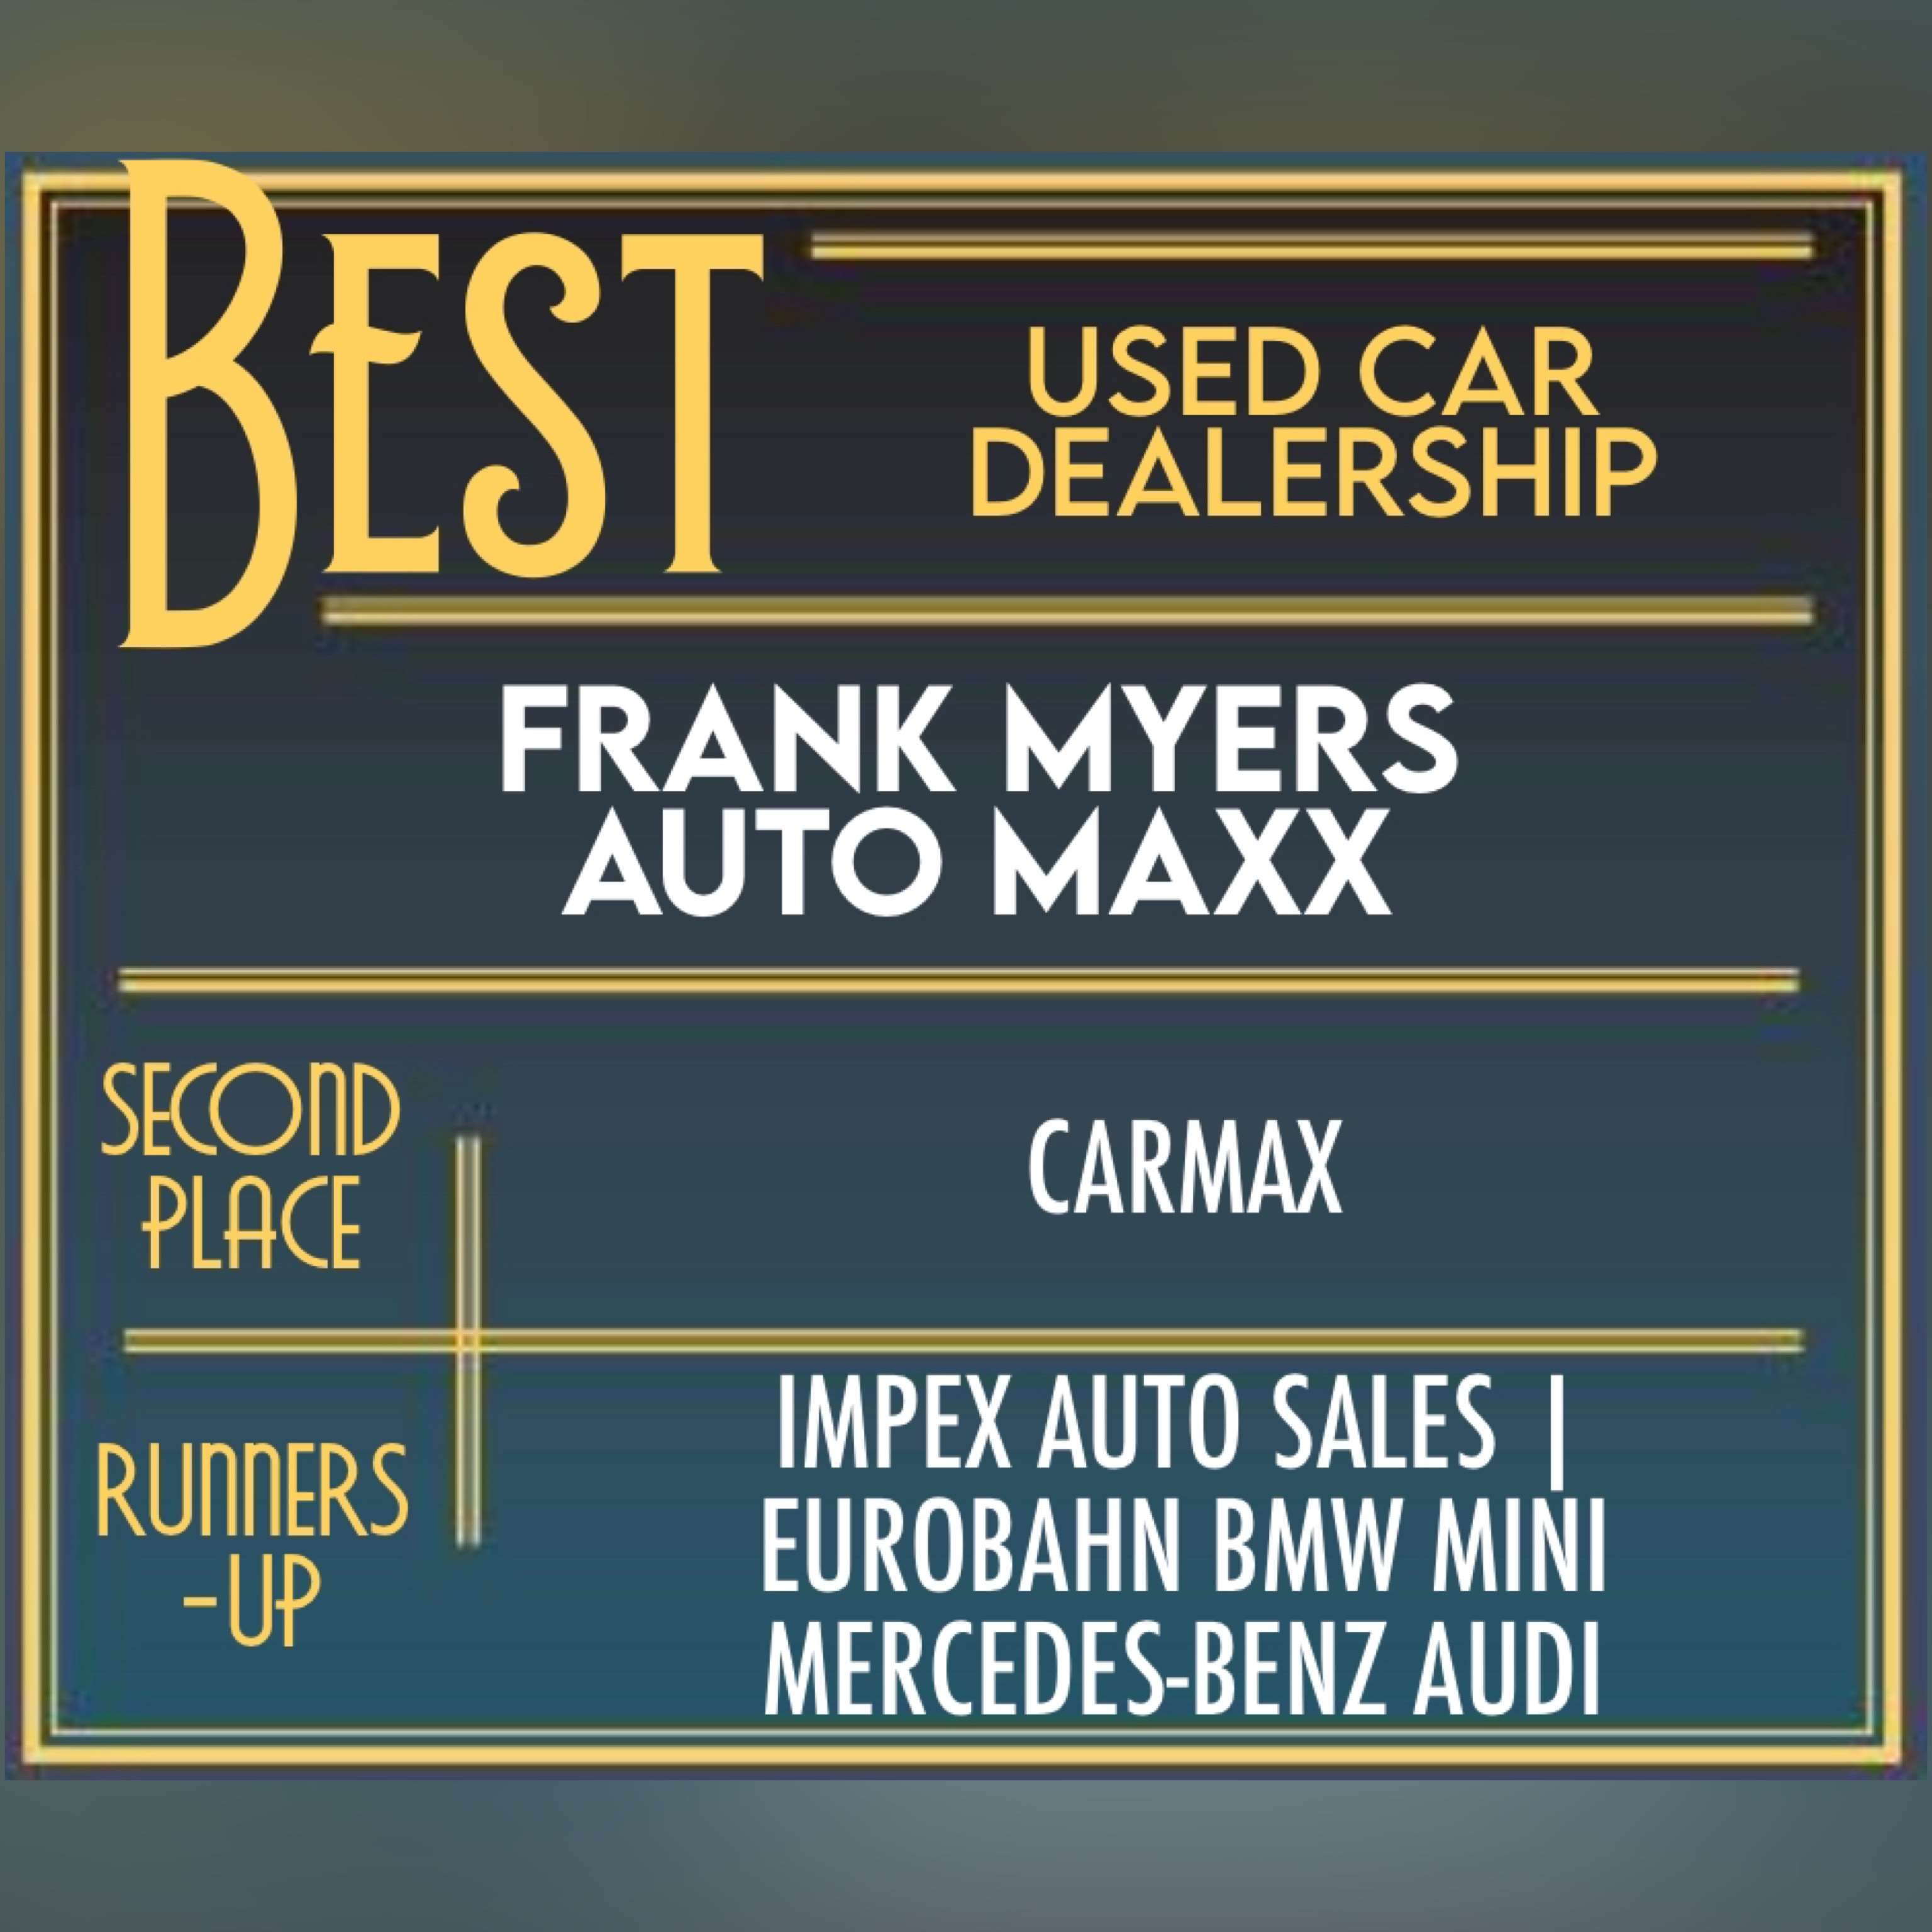 Best Used Car Dealership in the Triad is Frank Myers Auto